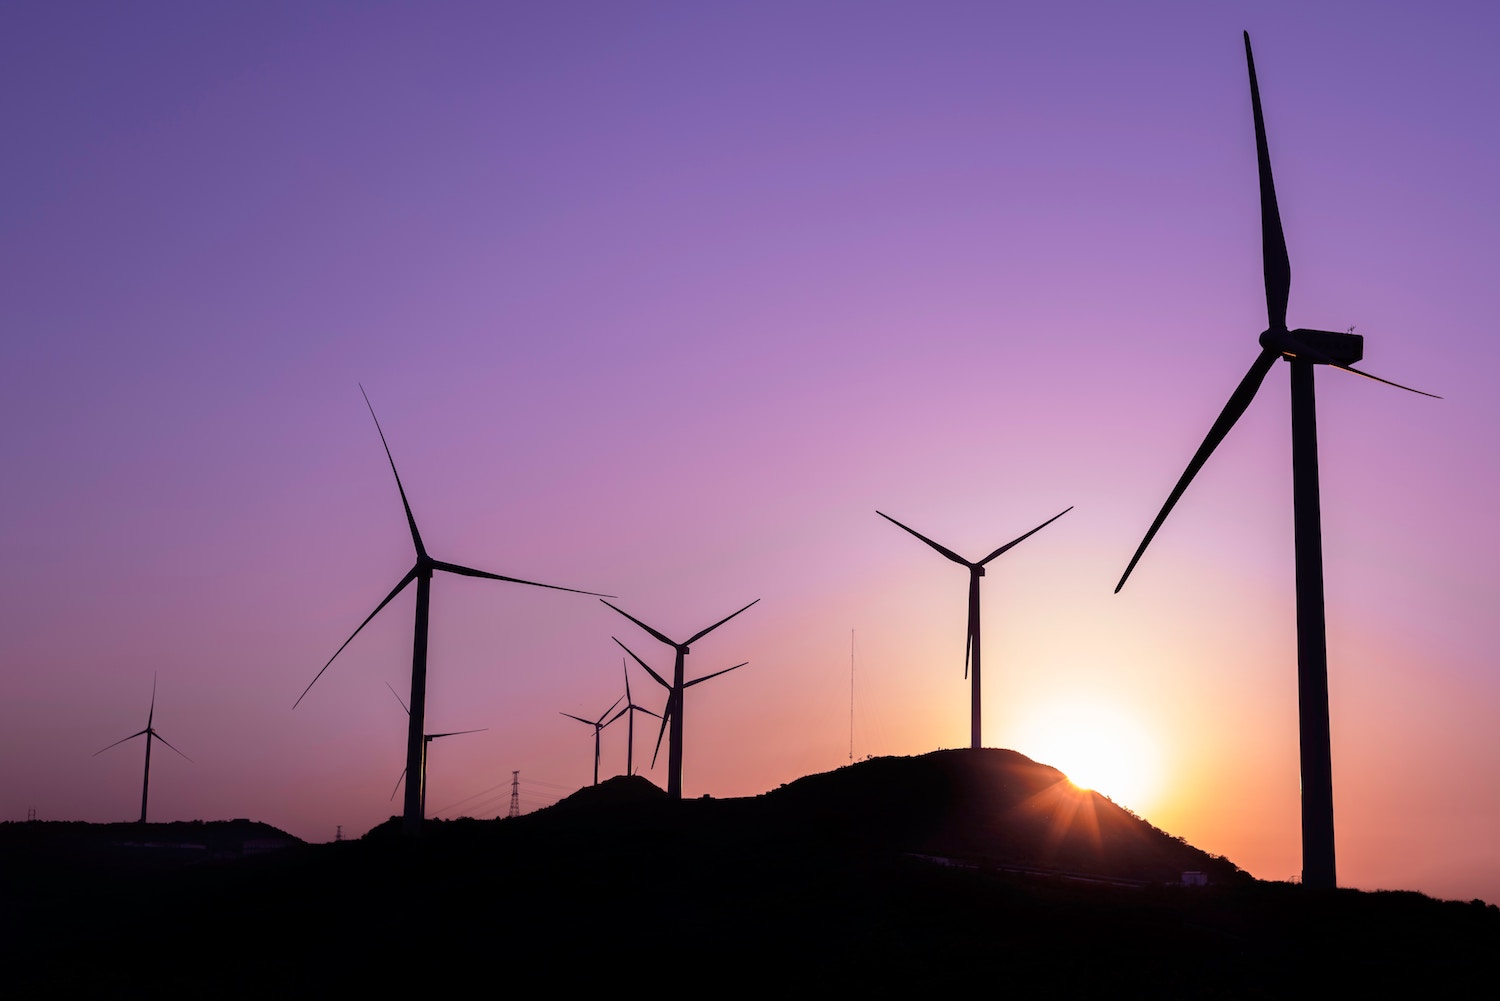 New Data Released On Patents in Wind Energy Sector